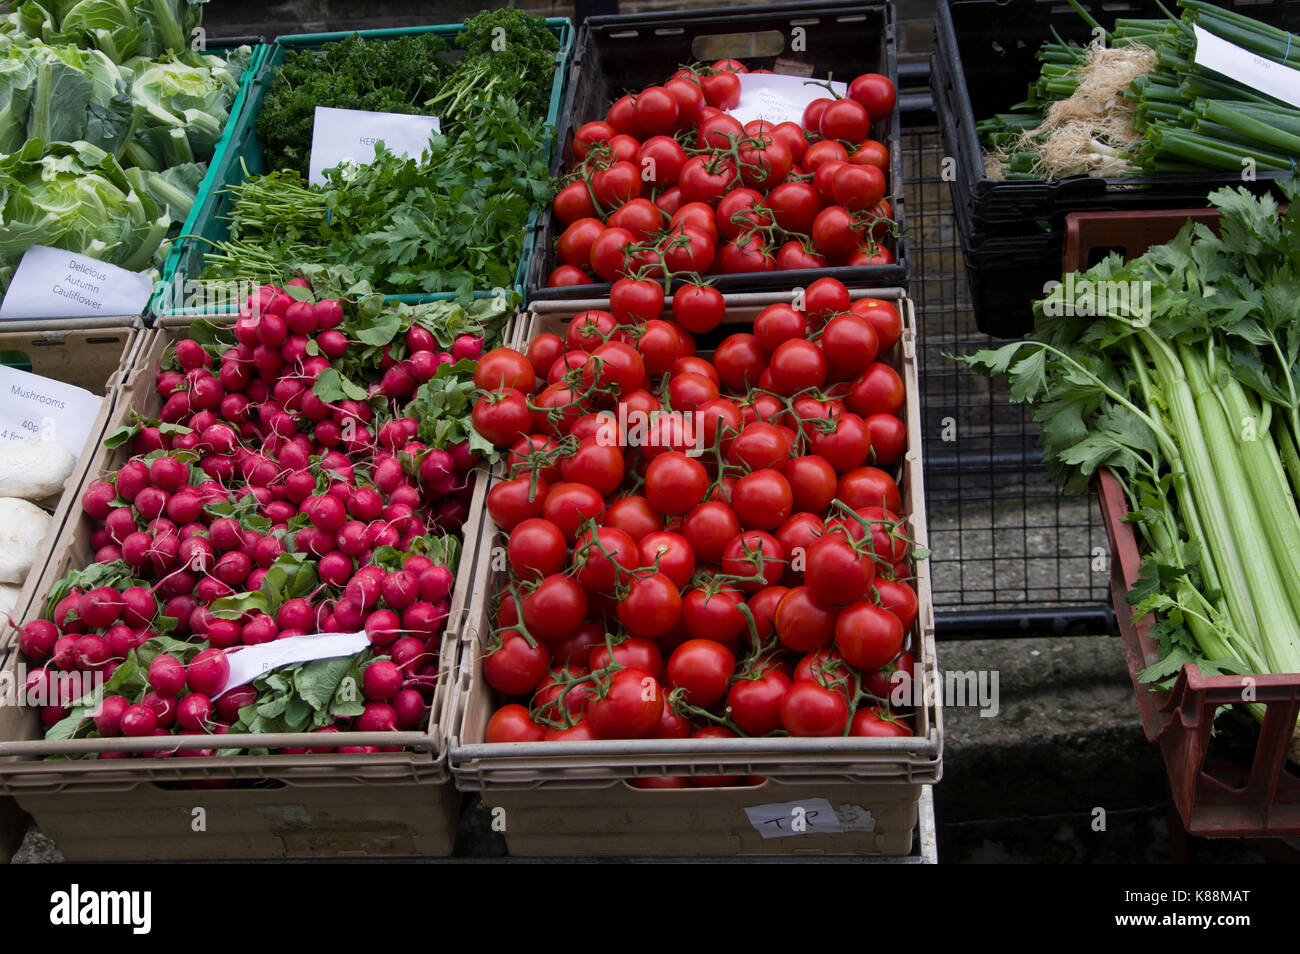 Tomatoes, radishes, celery and other fresh produce on sale in a market in London - Stock Image